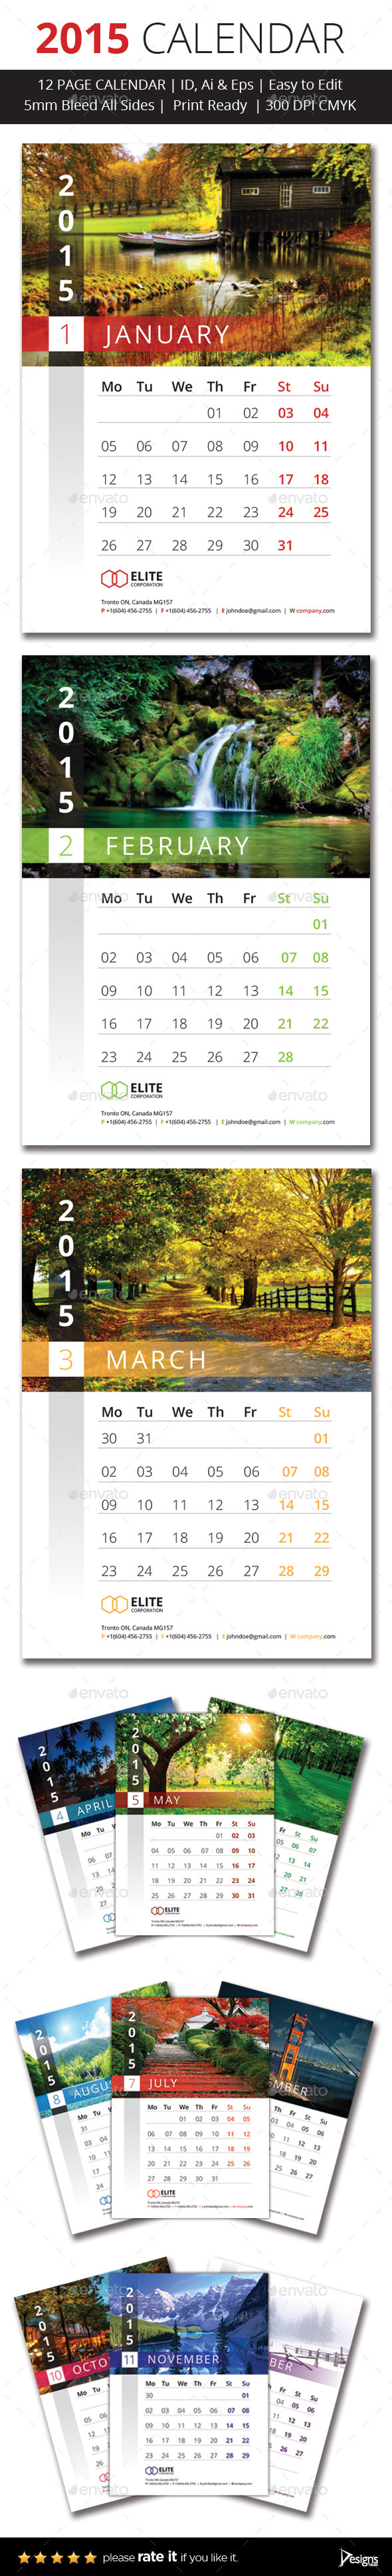 2015 Wall Calender - Calendars Stationery